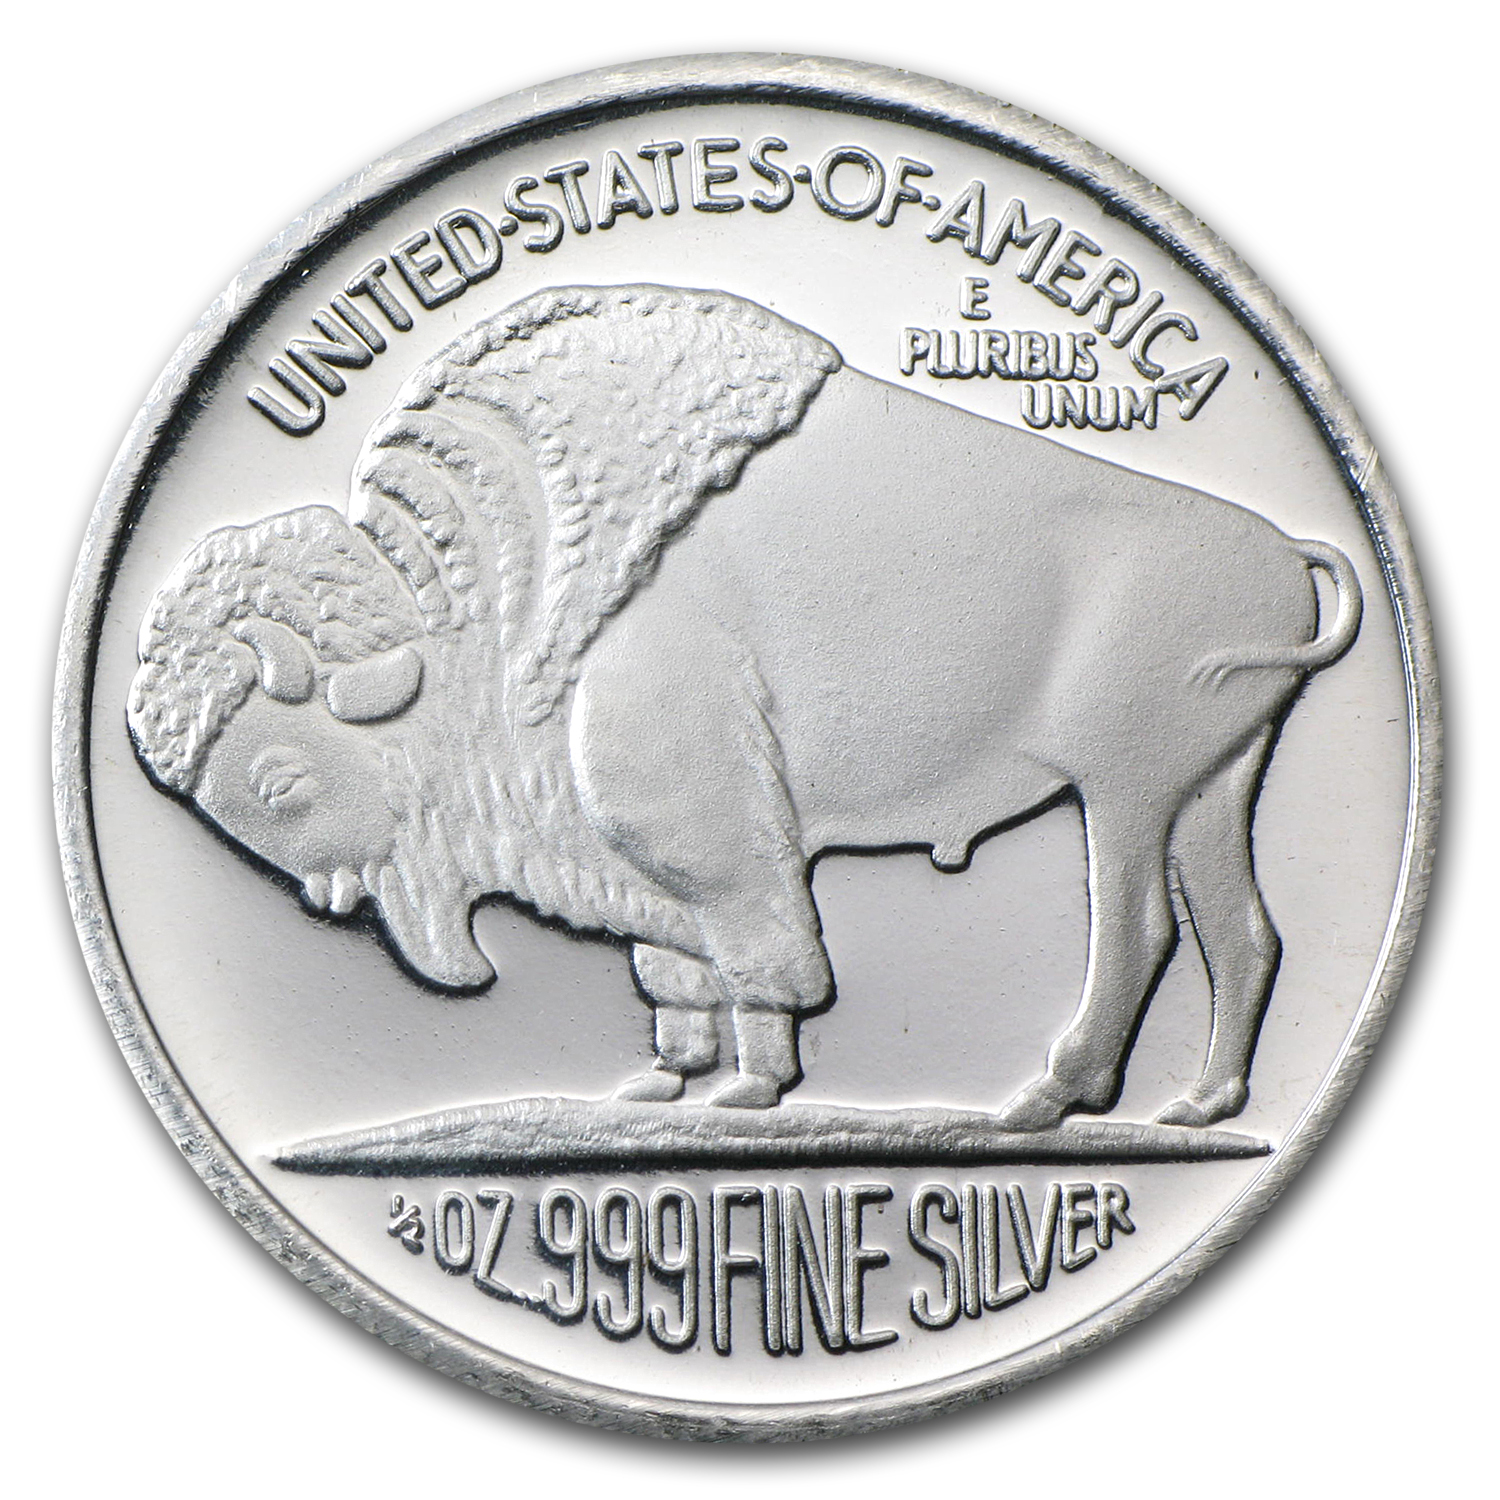 1/2 oz Silver Rounds - Buffalo (2012)